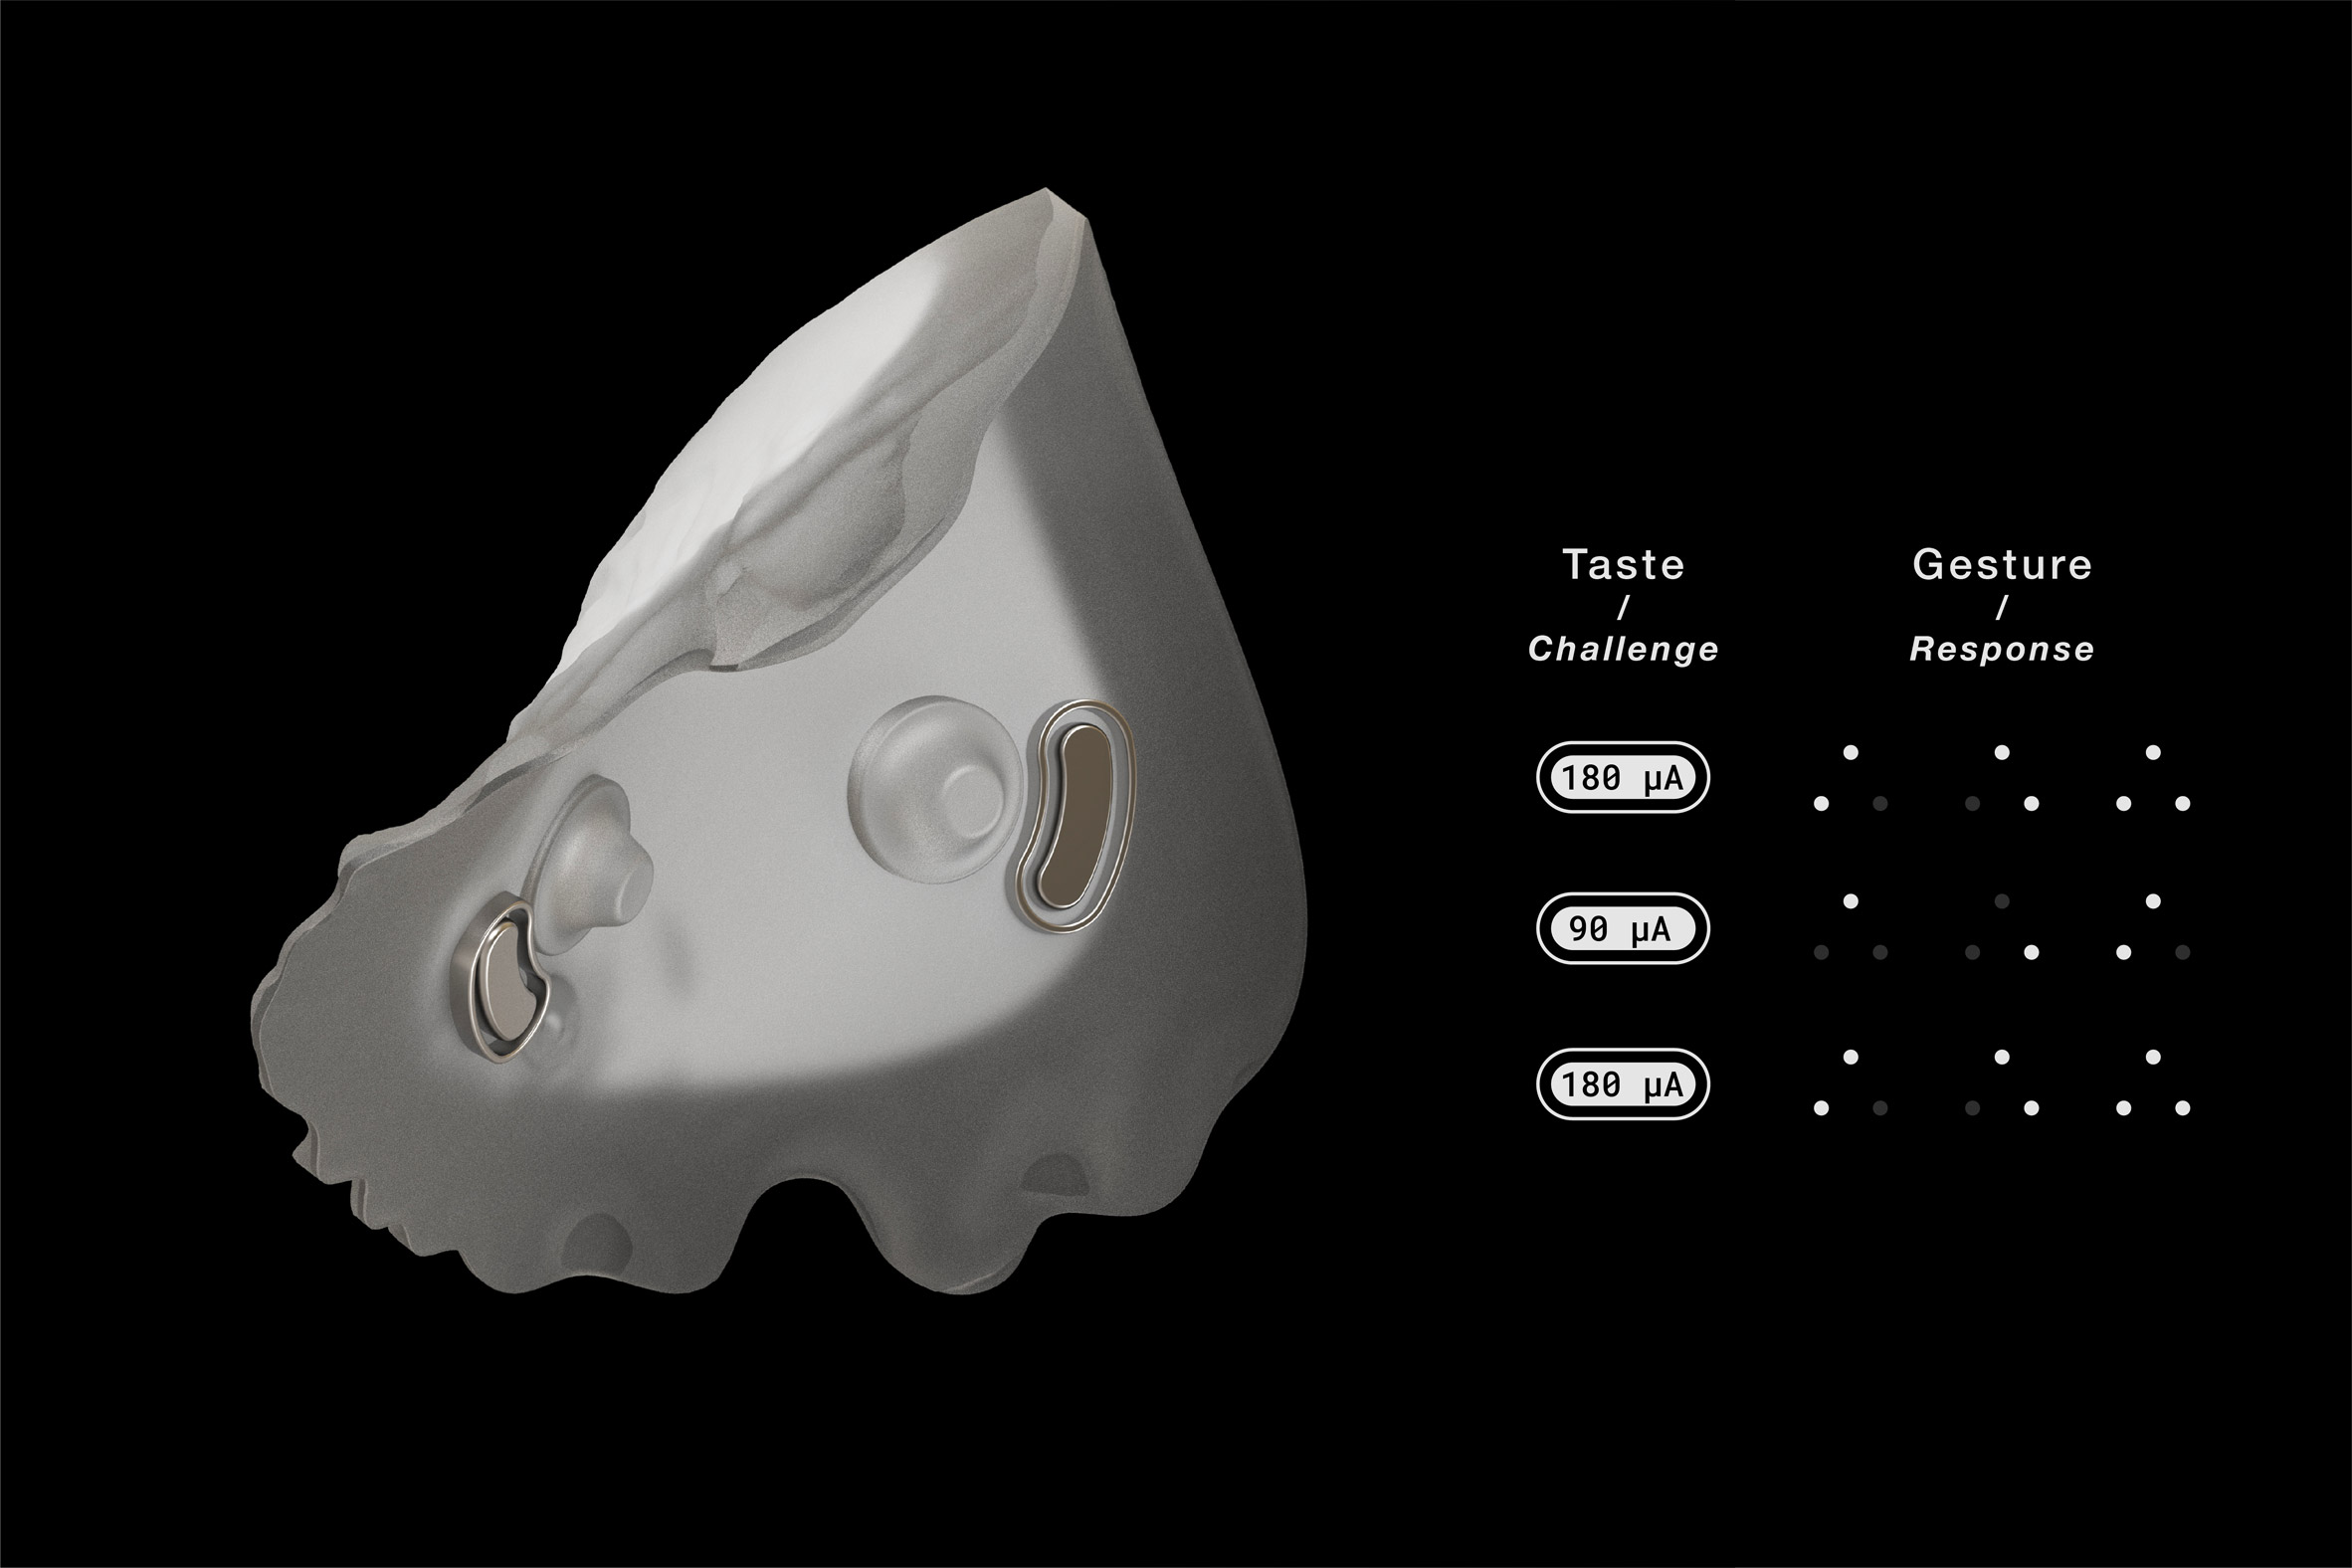 Stealth mouth recognition device by Royal College of Art and Imperial College London design graduates